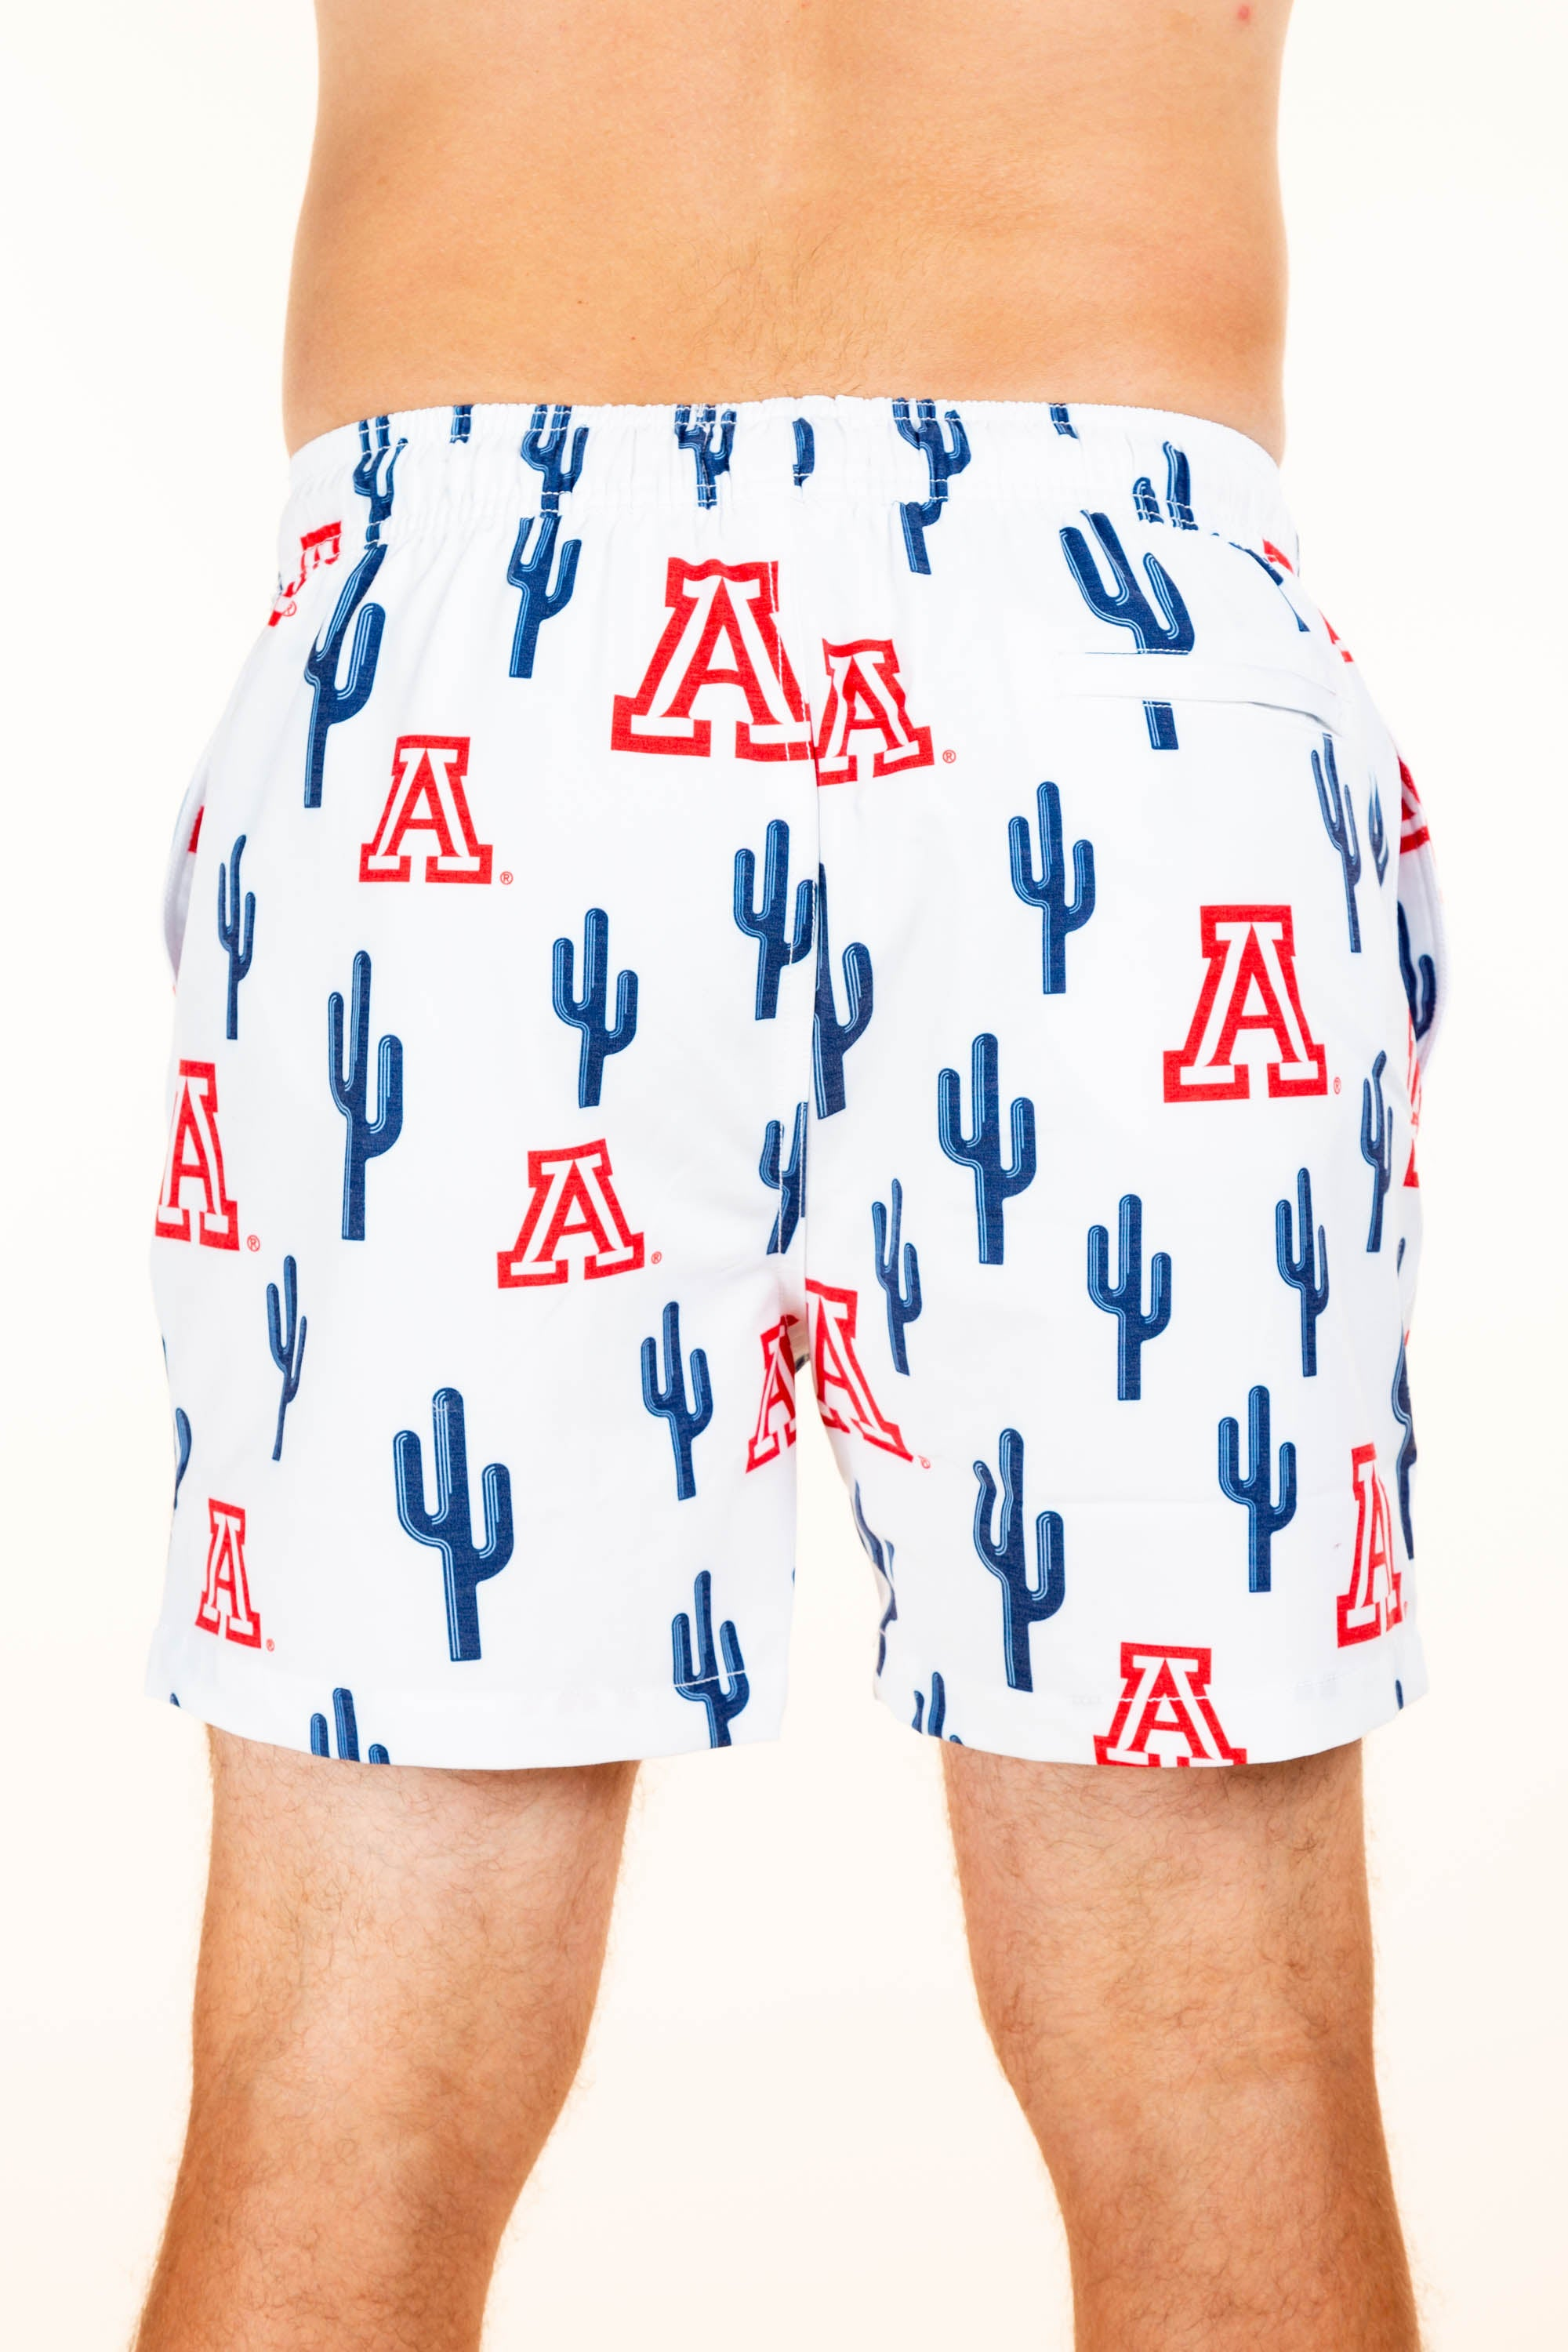 University of Arizona Cactus men's swimsuit